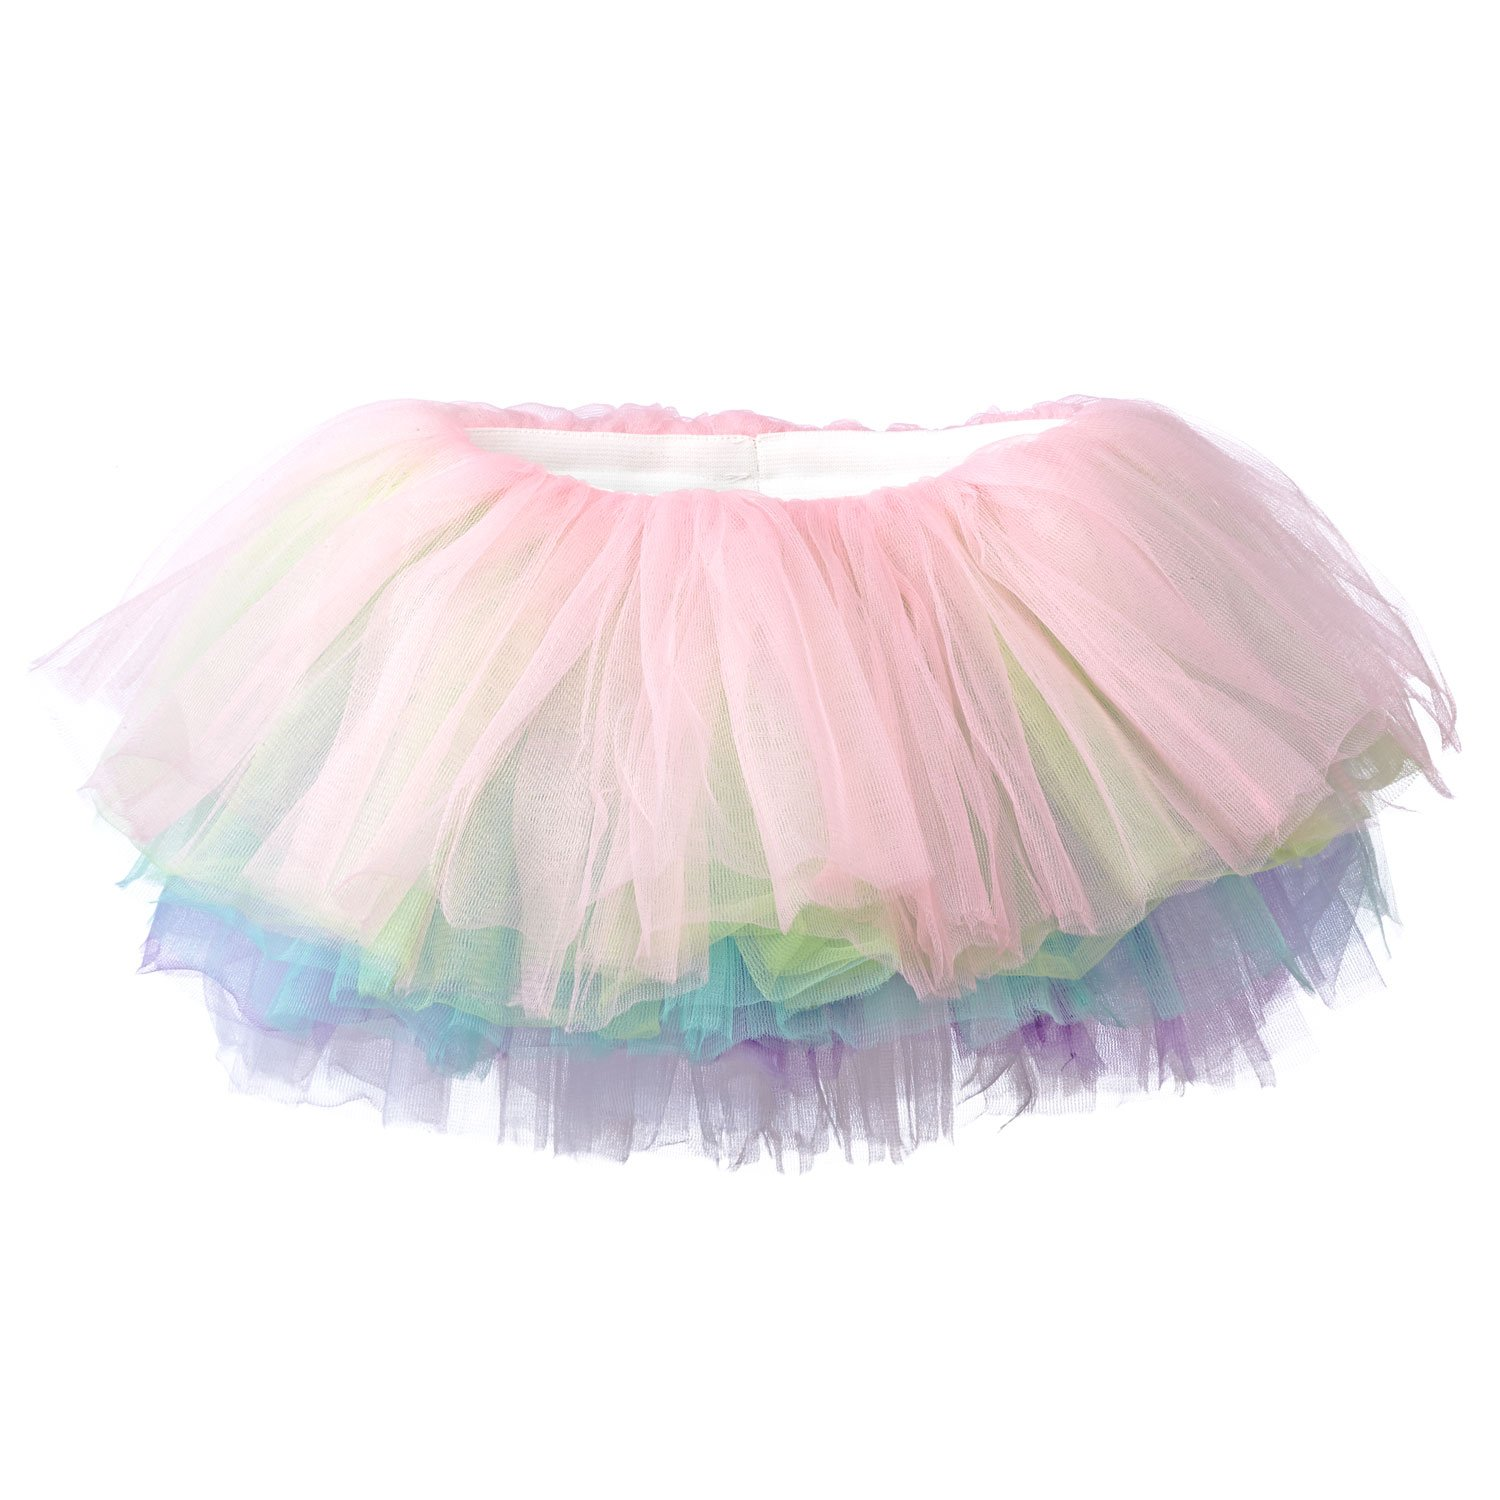 My Lello Big Girls 10-Layer Short Ballet Tulle Tutu Skirt (4T-10yr) -Soft Pastel